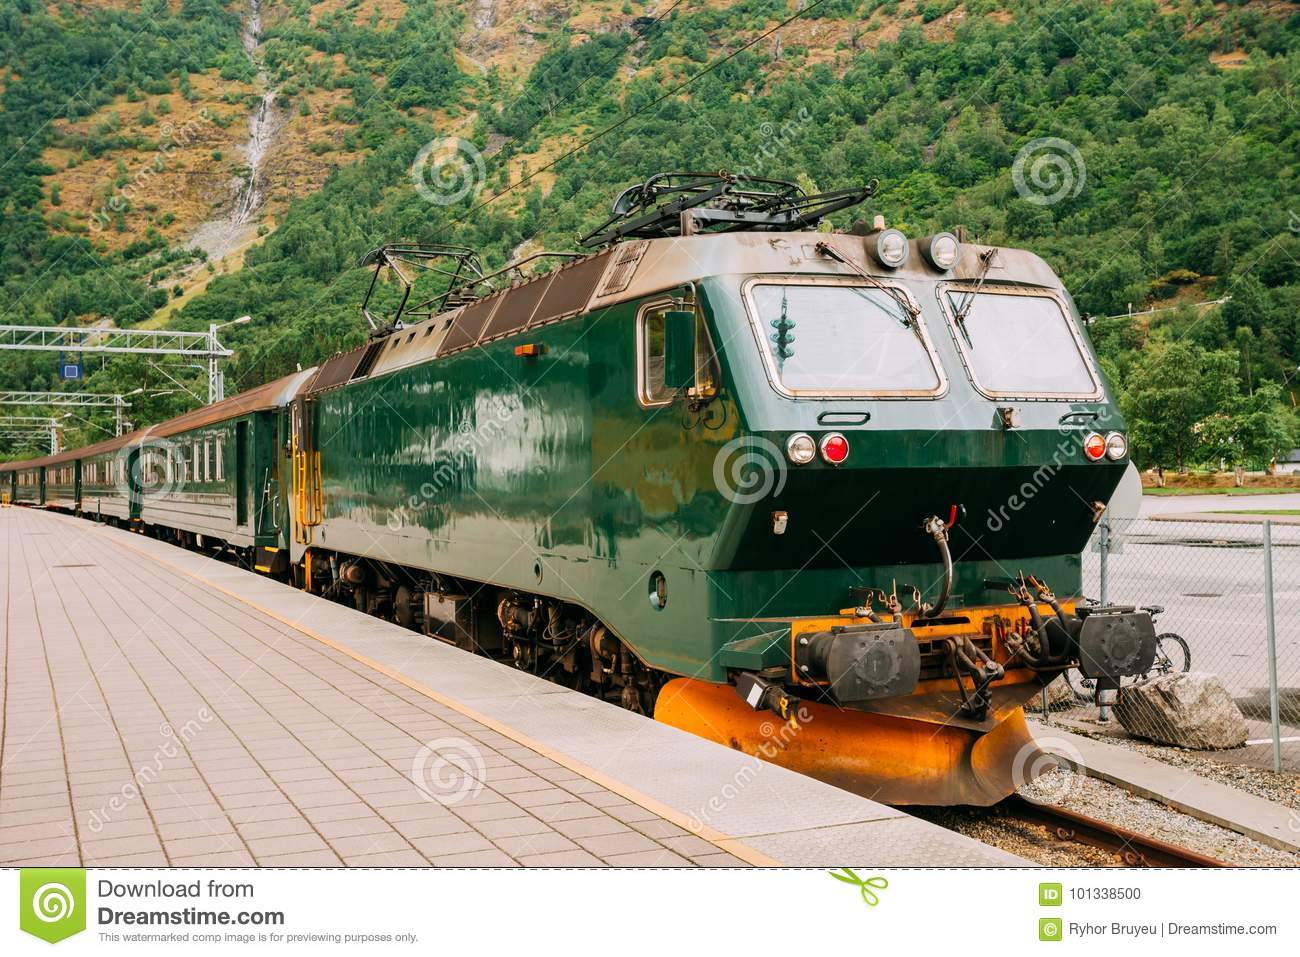 Norway Train Flam Norway Famous Railroad Flamsbahn Green Norwegian Train